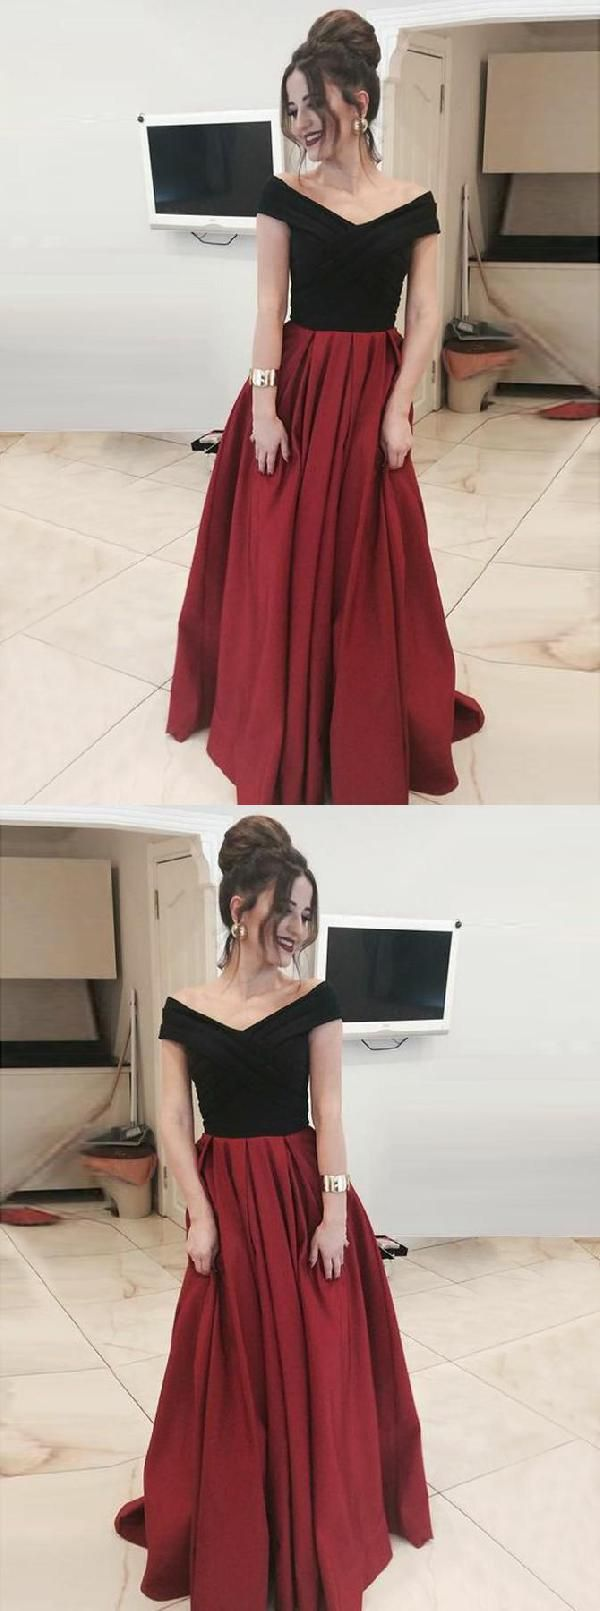 Cheap Absorbing Prom Dresses 2019, Prom Dresses Long, A-Line Prom Dresses, Burgundy Prom Dresses